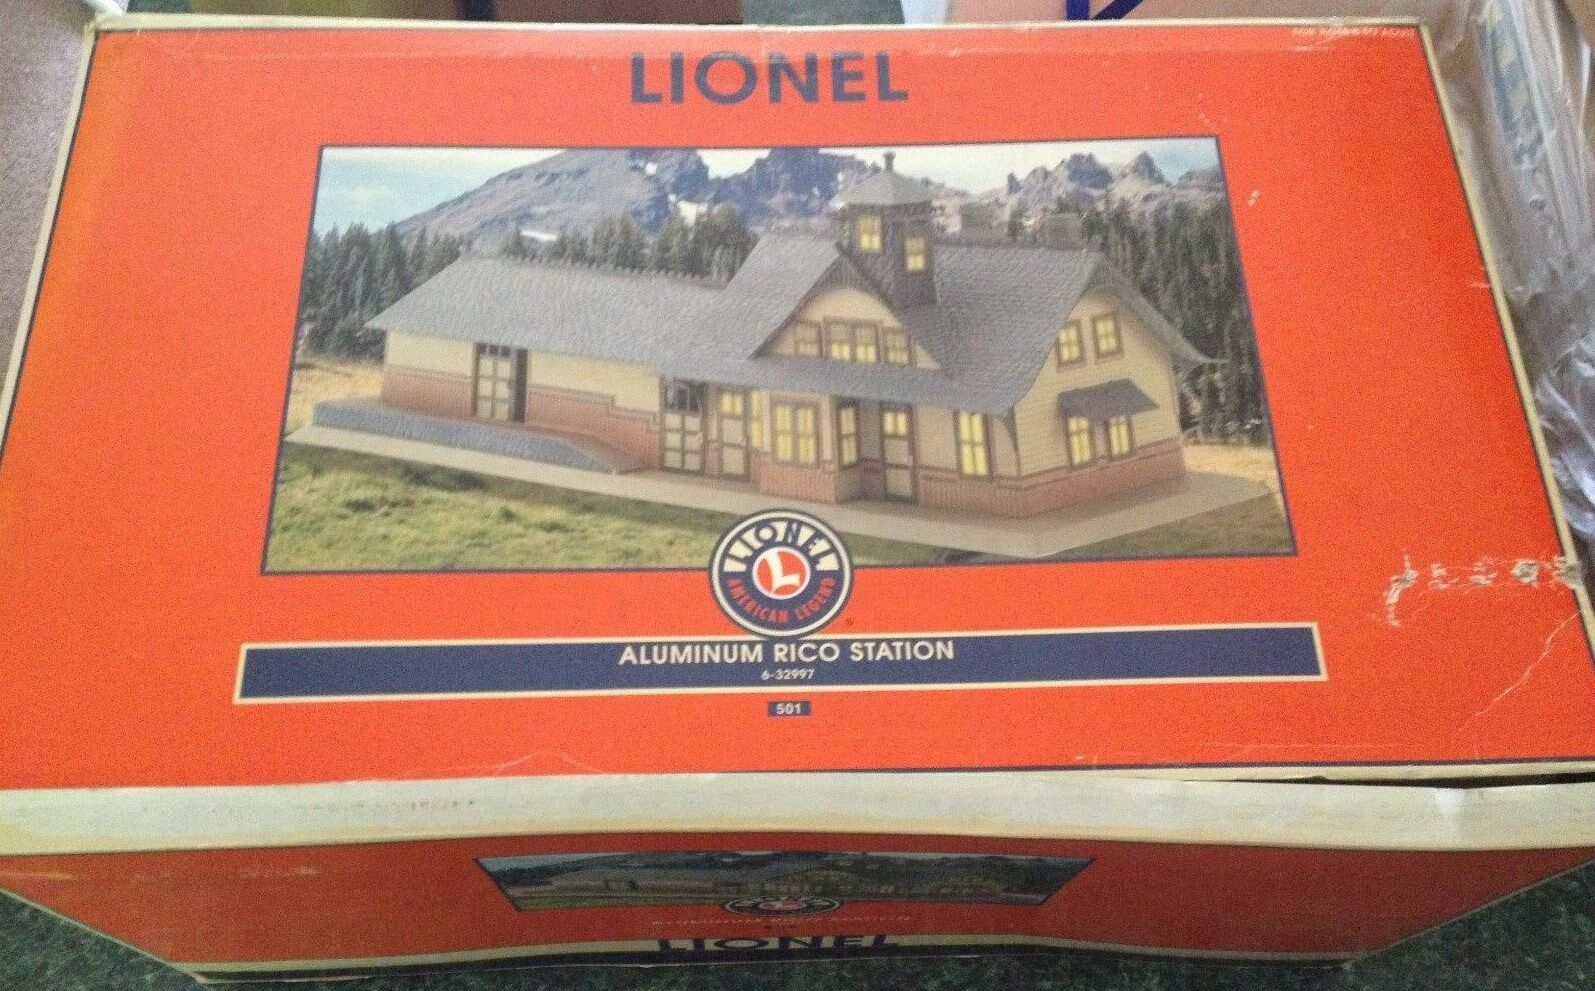 Lionel 6-32997 Aluminum Rio Station New bad Box